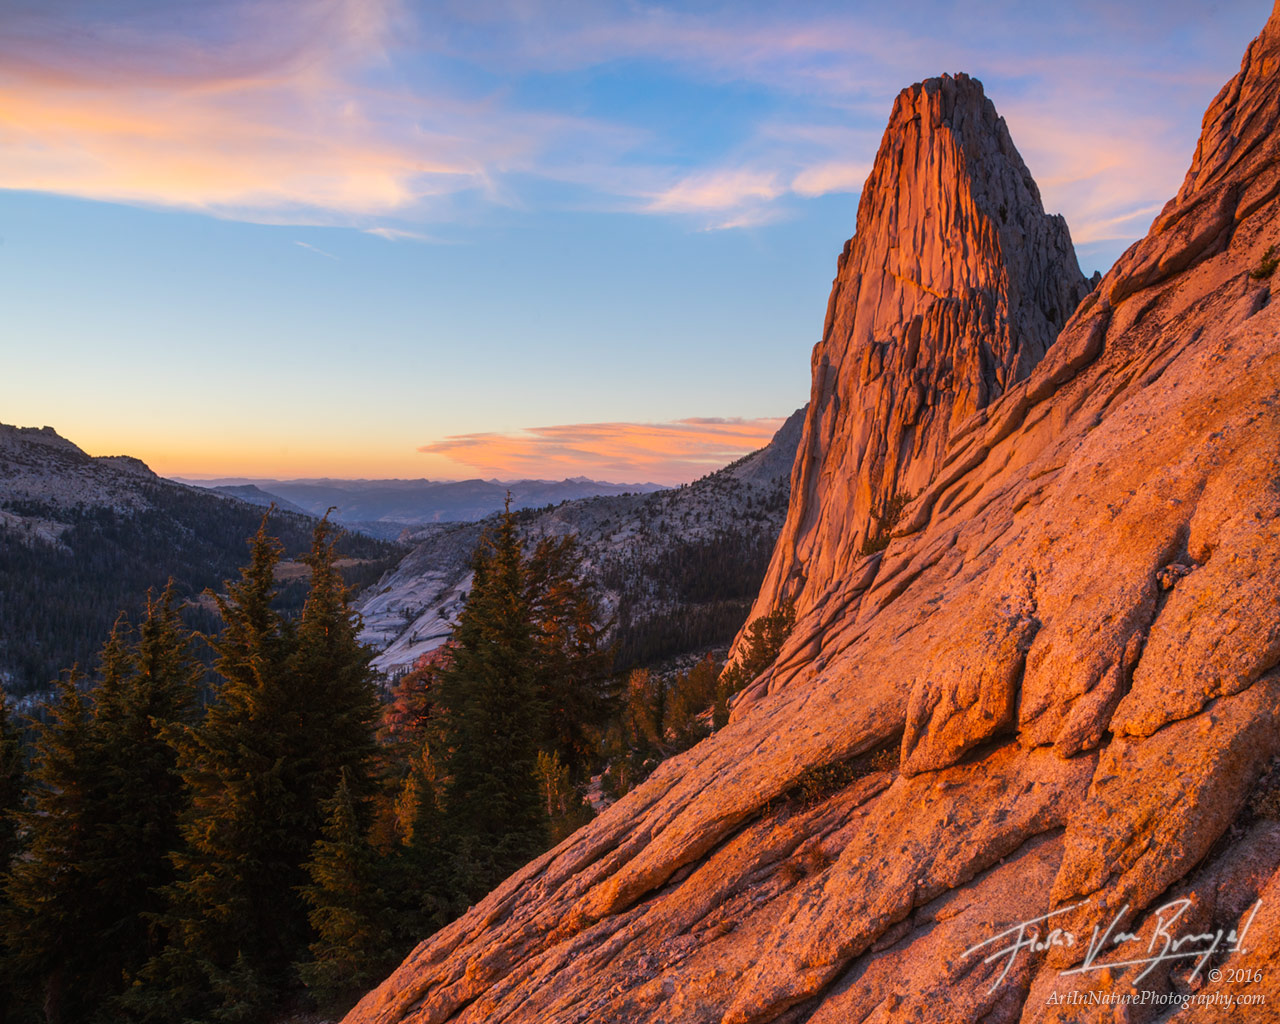 Mattes Crest, Yosemite National Park, California, photo